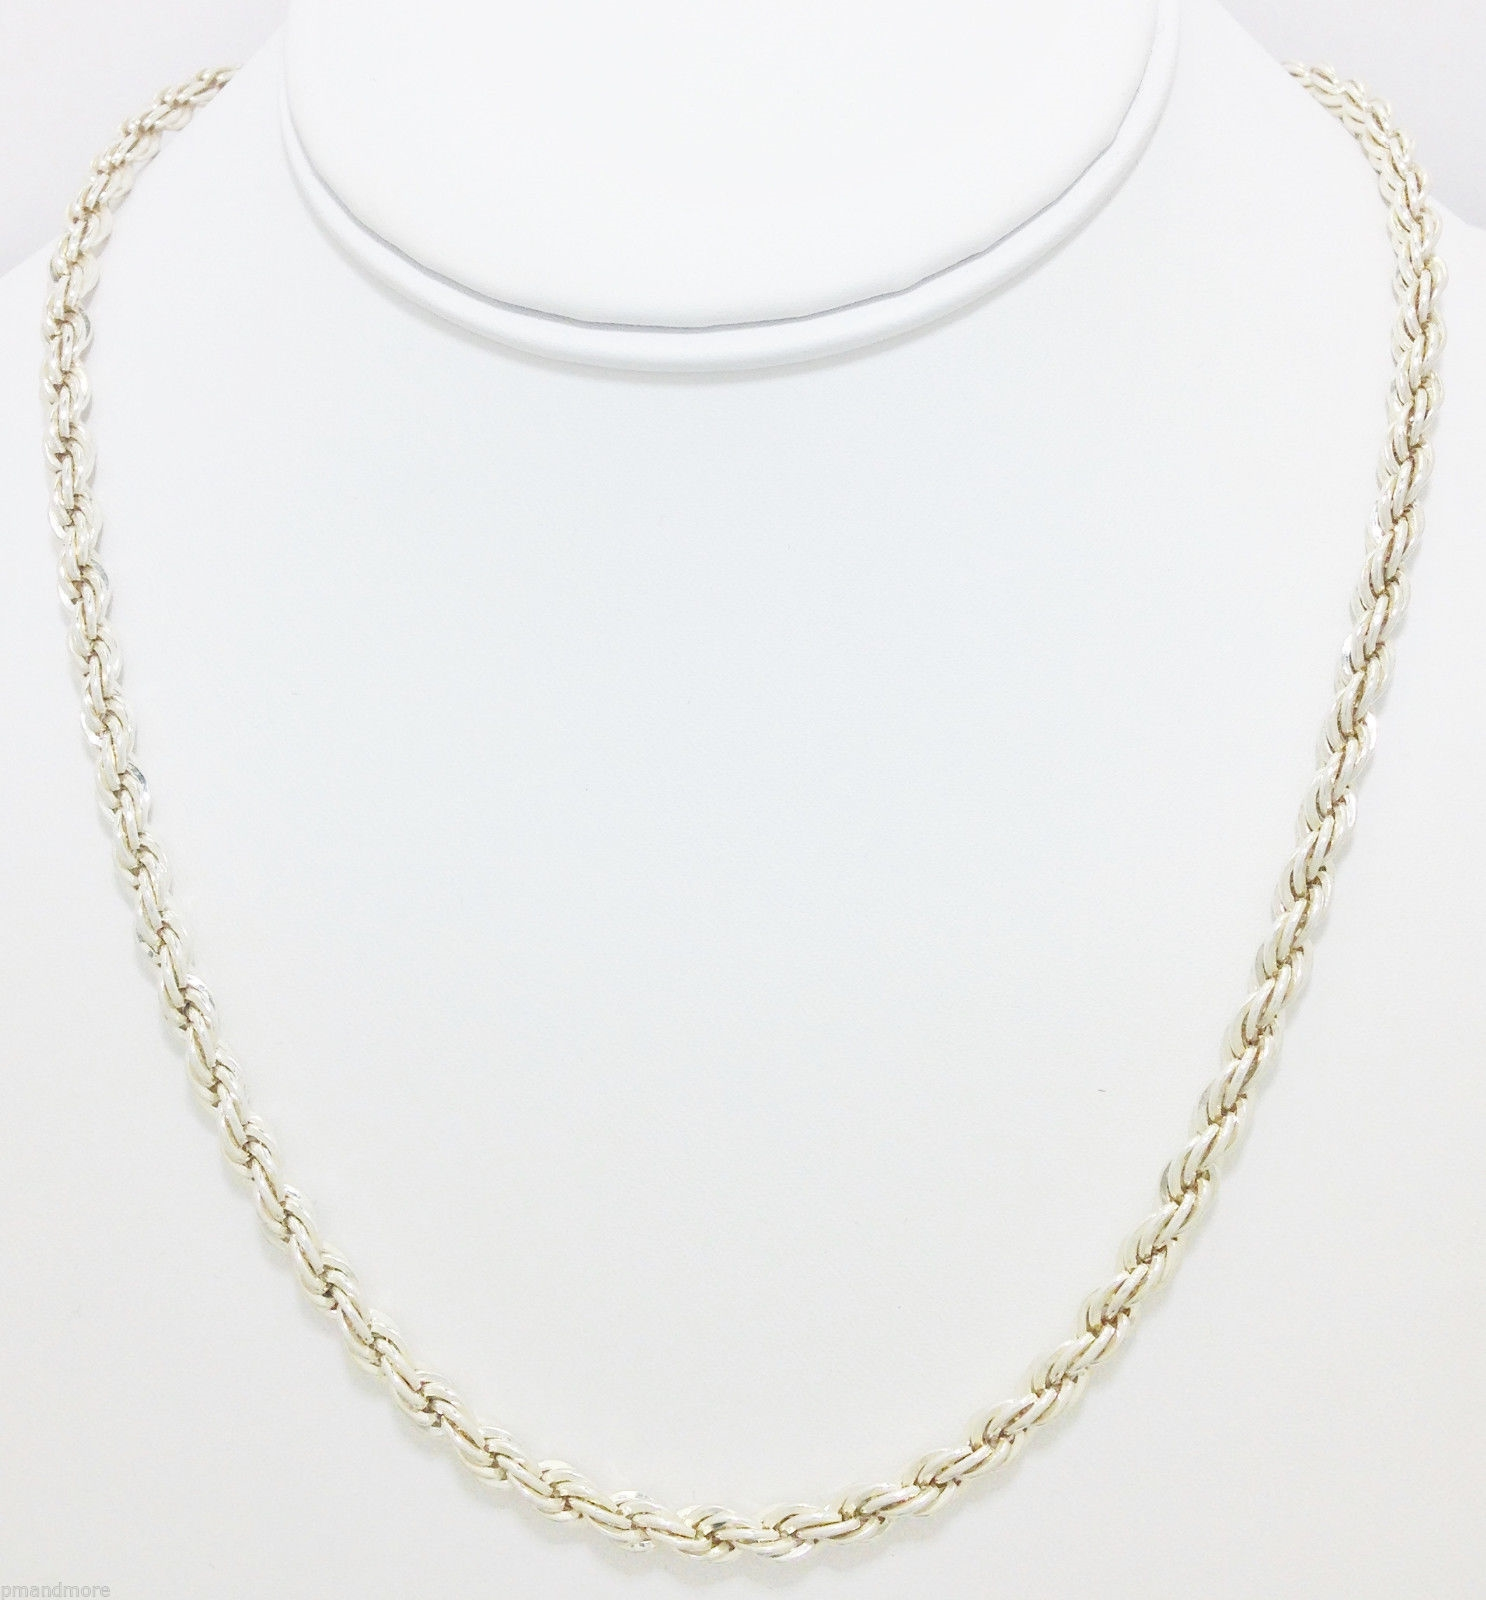 HEAVY STERLING SILVER ROPE CHAIN NECKLACE 20